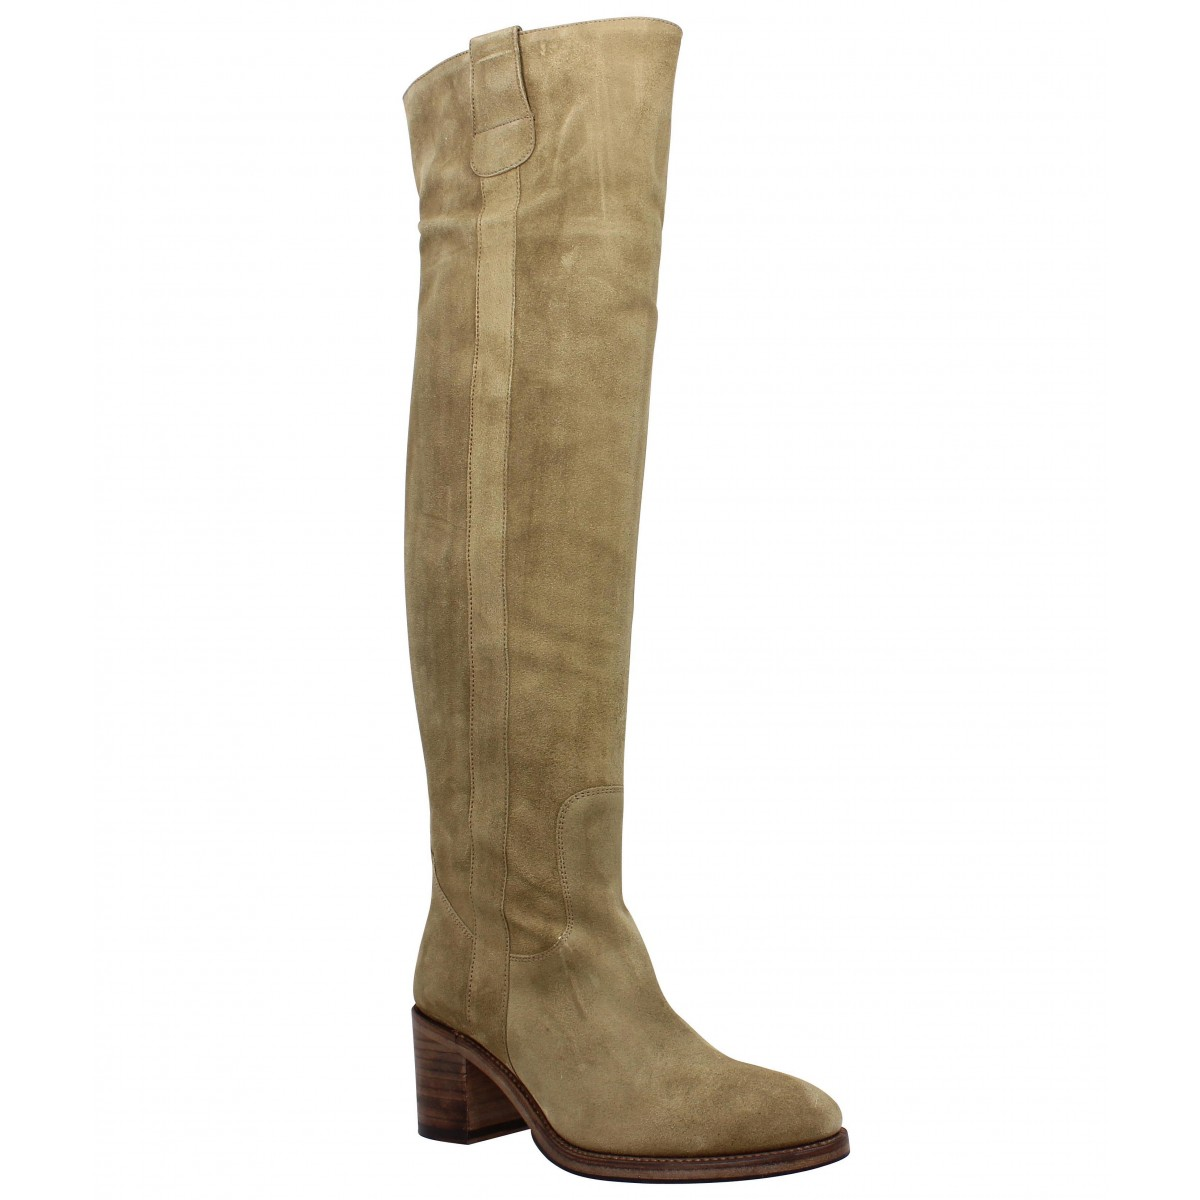 Bottes FREE LANCE Mansory 7 Genouillere velours Femme Taupe